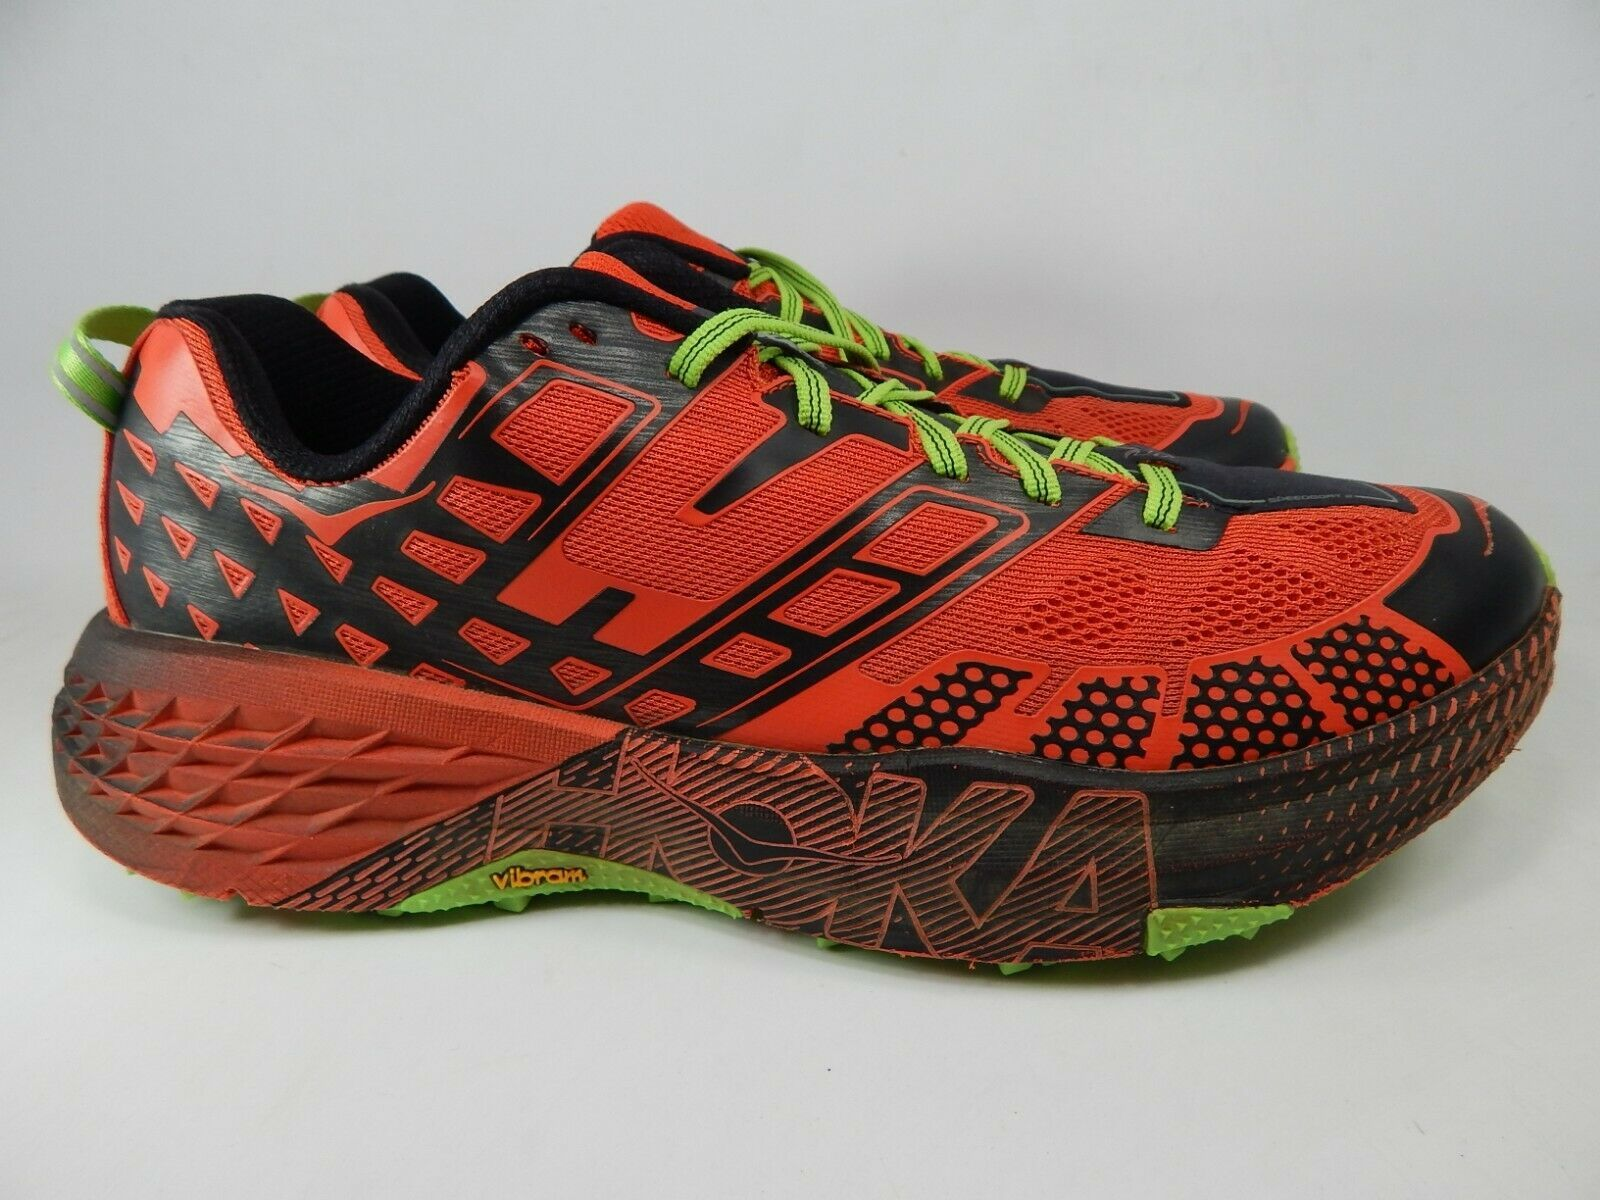 Primary image for Hoka One One SpeedGoat 2 Sz 11 M (D) EU 45 1/3 Men's Trail Running Shoes 1016795